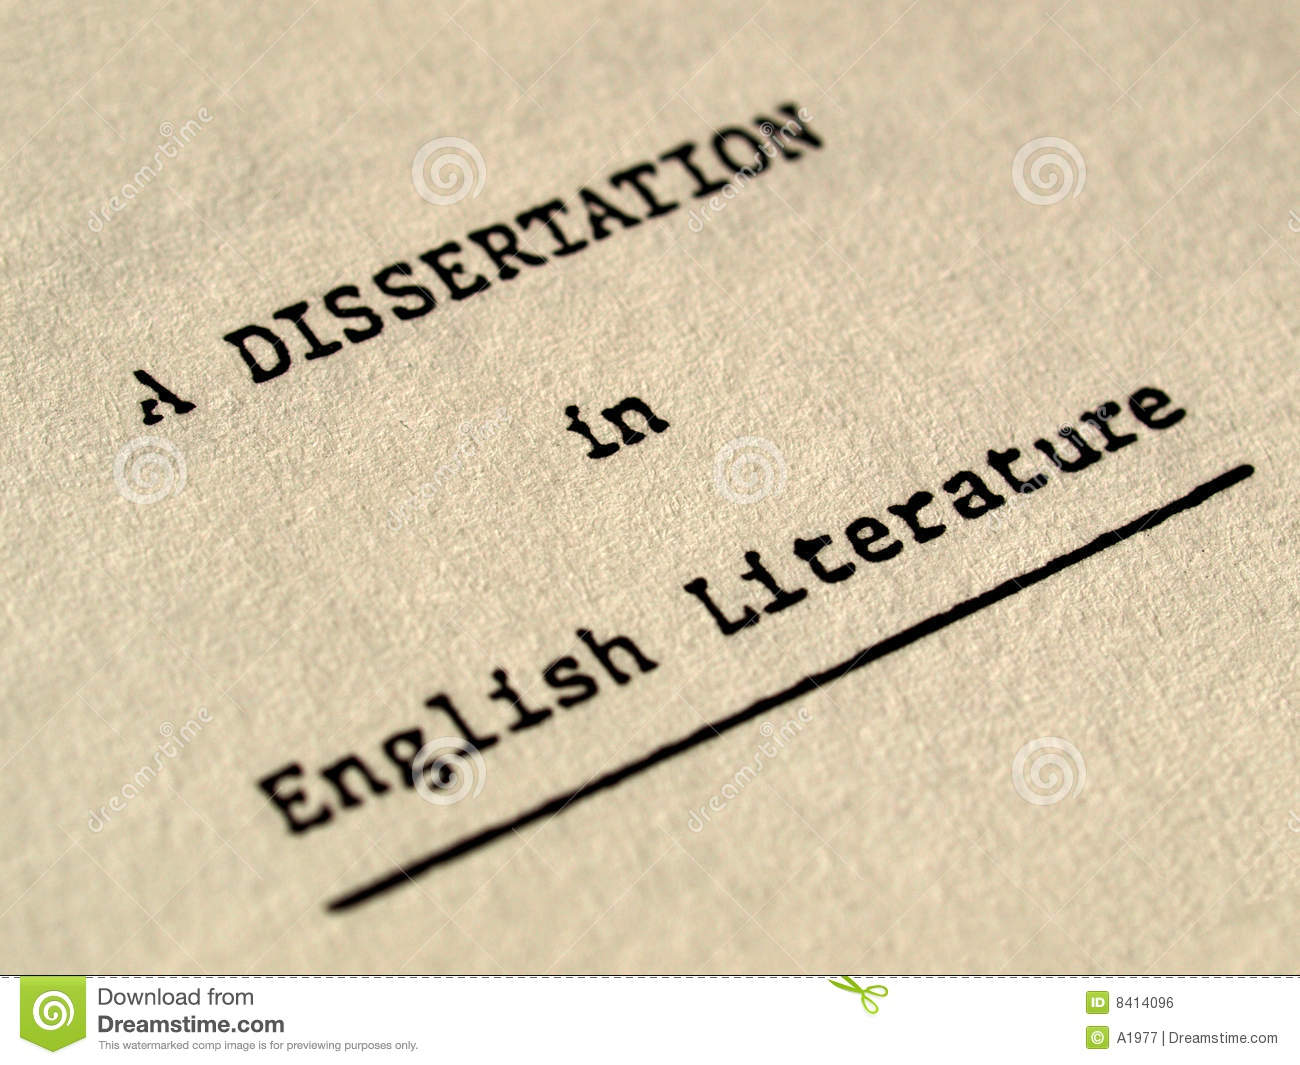 Dissertation help lit review length